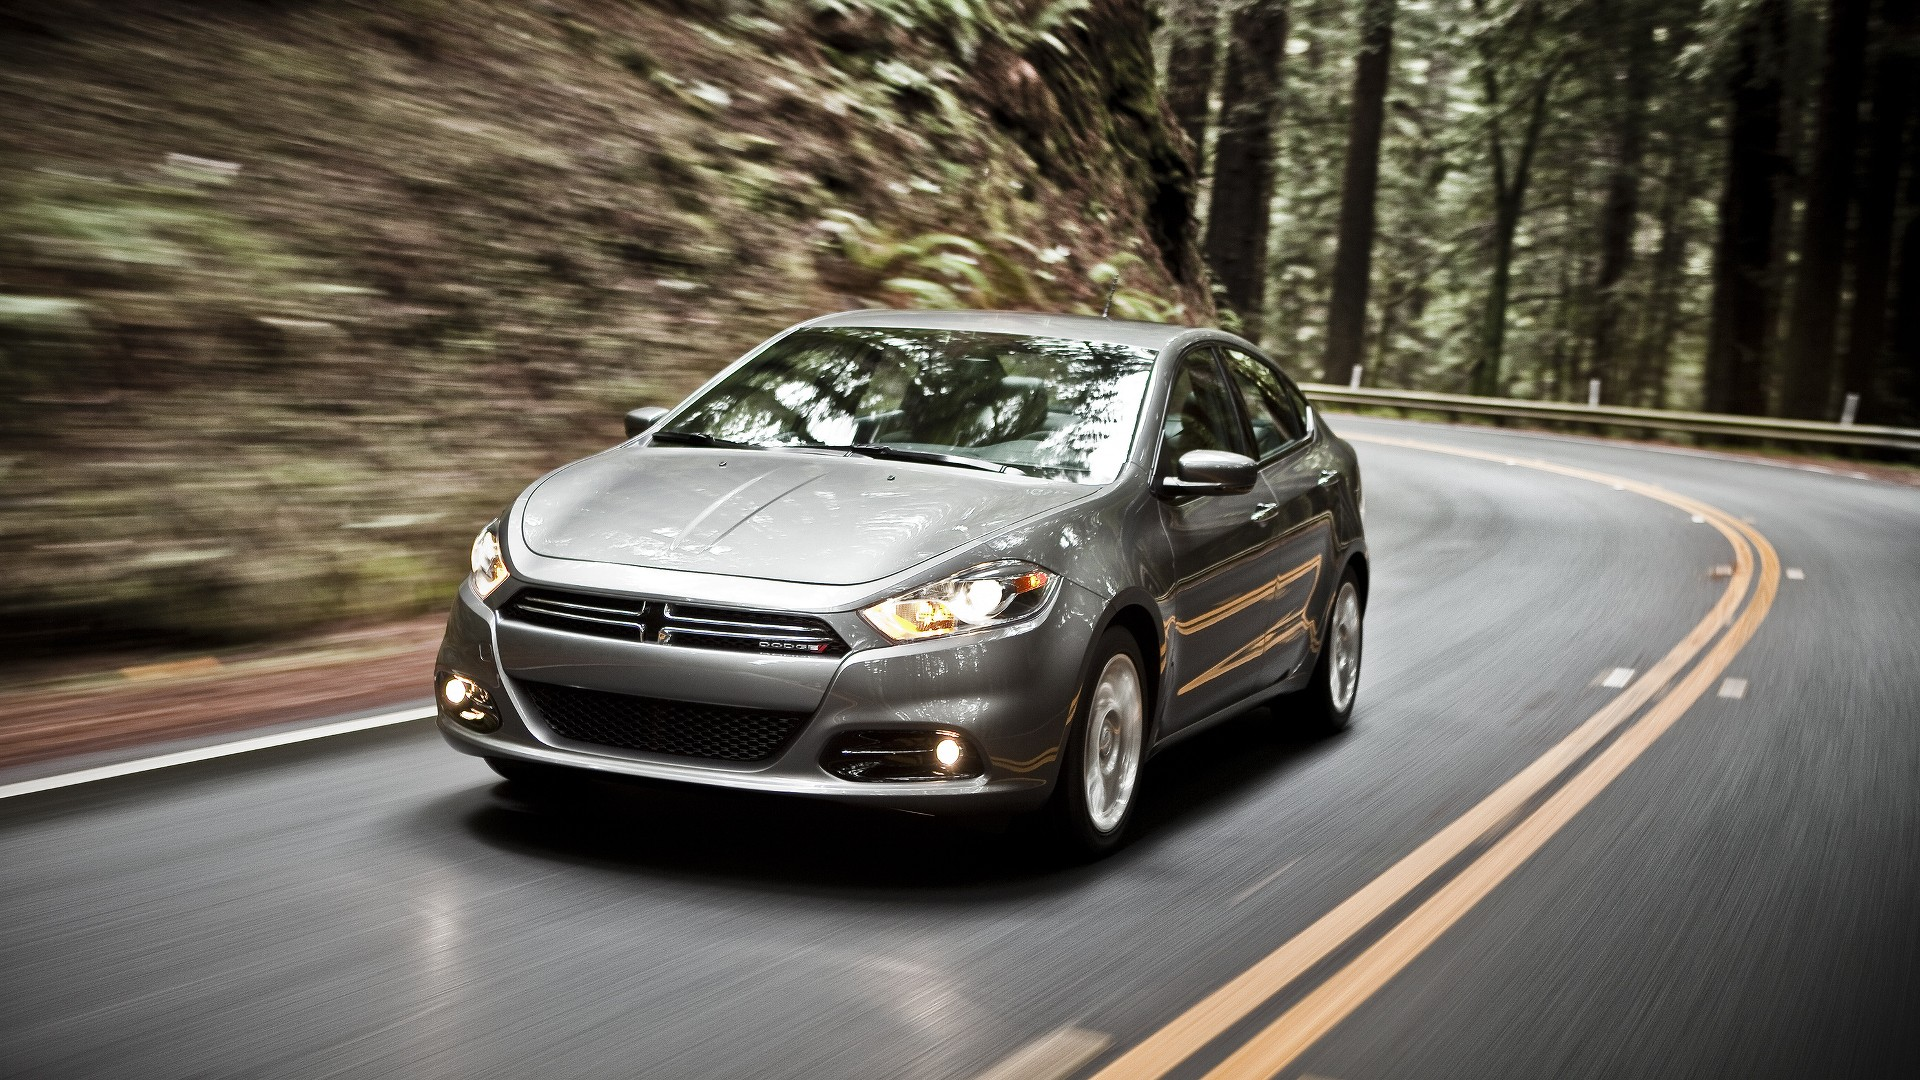 2016 Dodge Dart Introduced, It\'s $1,400 Cheaper than the 2015 Model ...